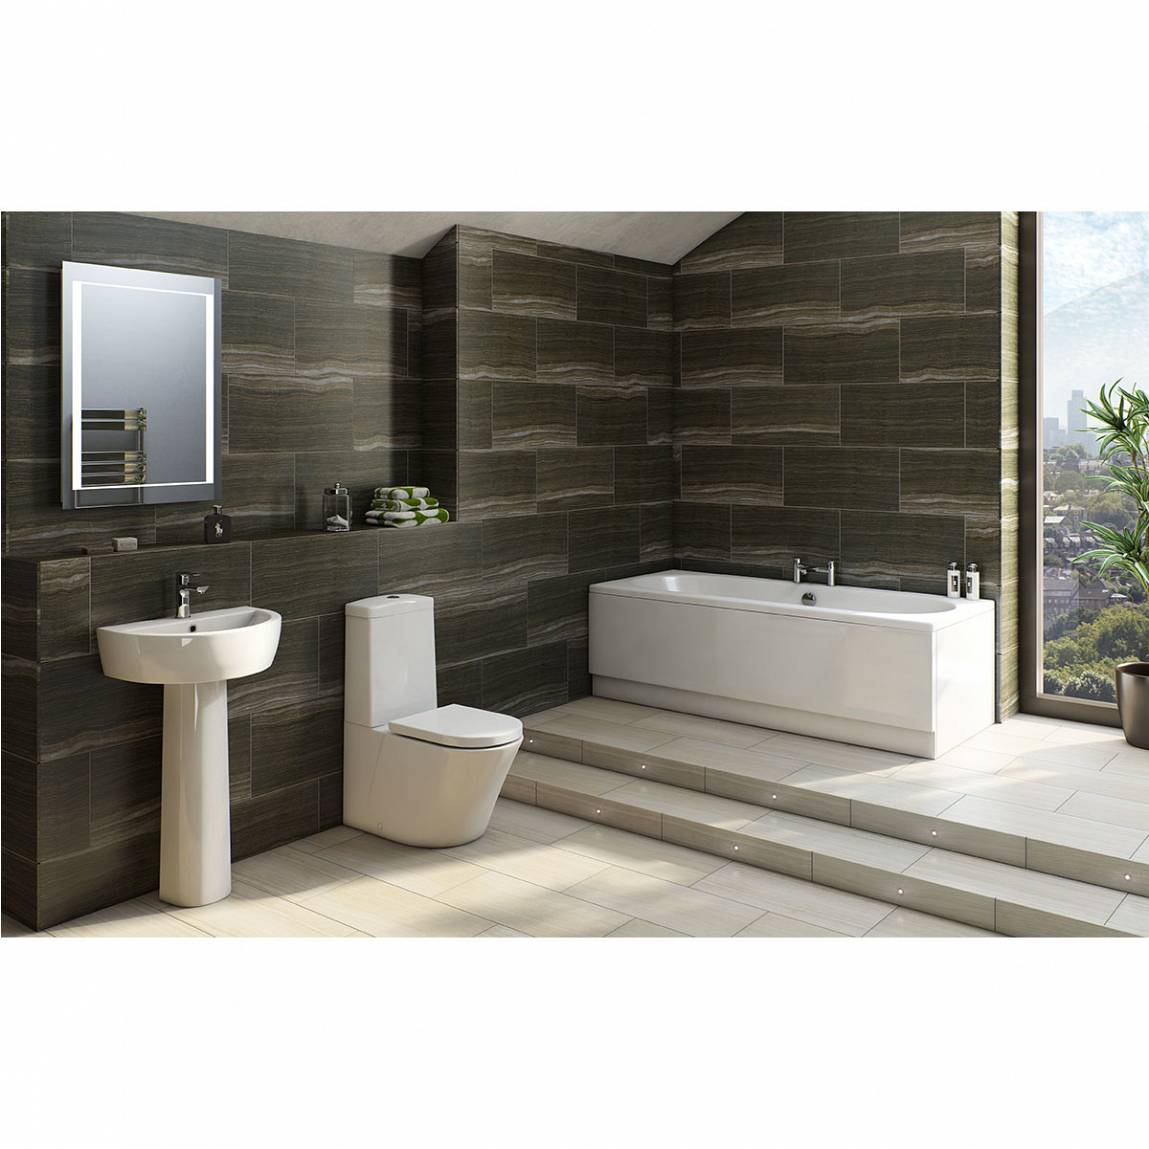 Mode Tate bathroom suite with contemporary double ended bath.jpg